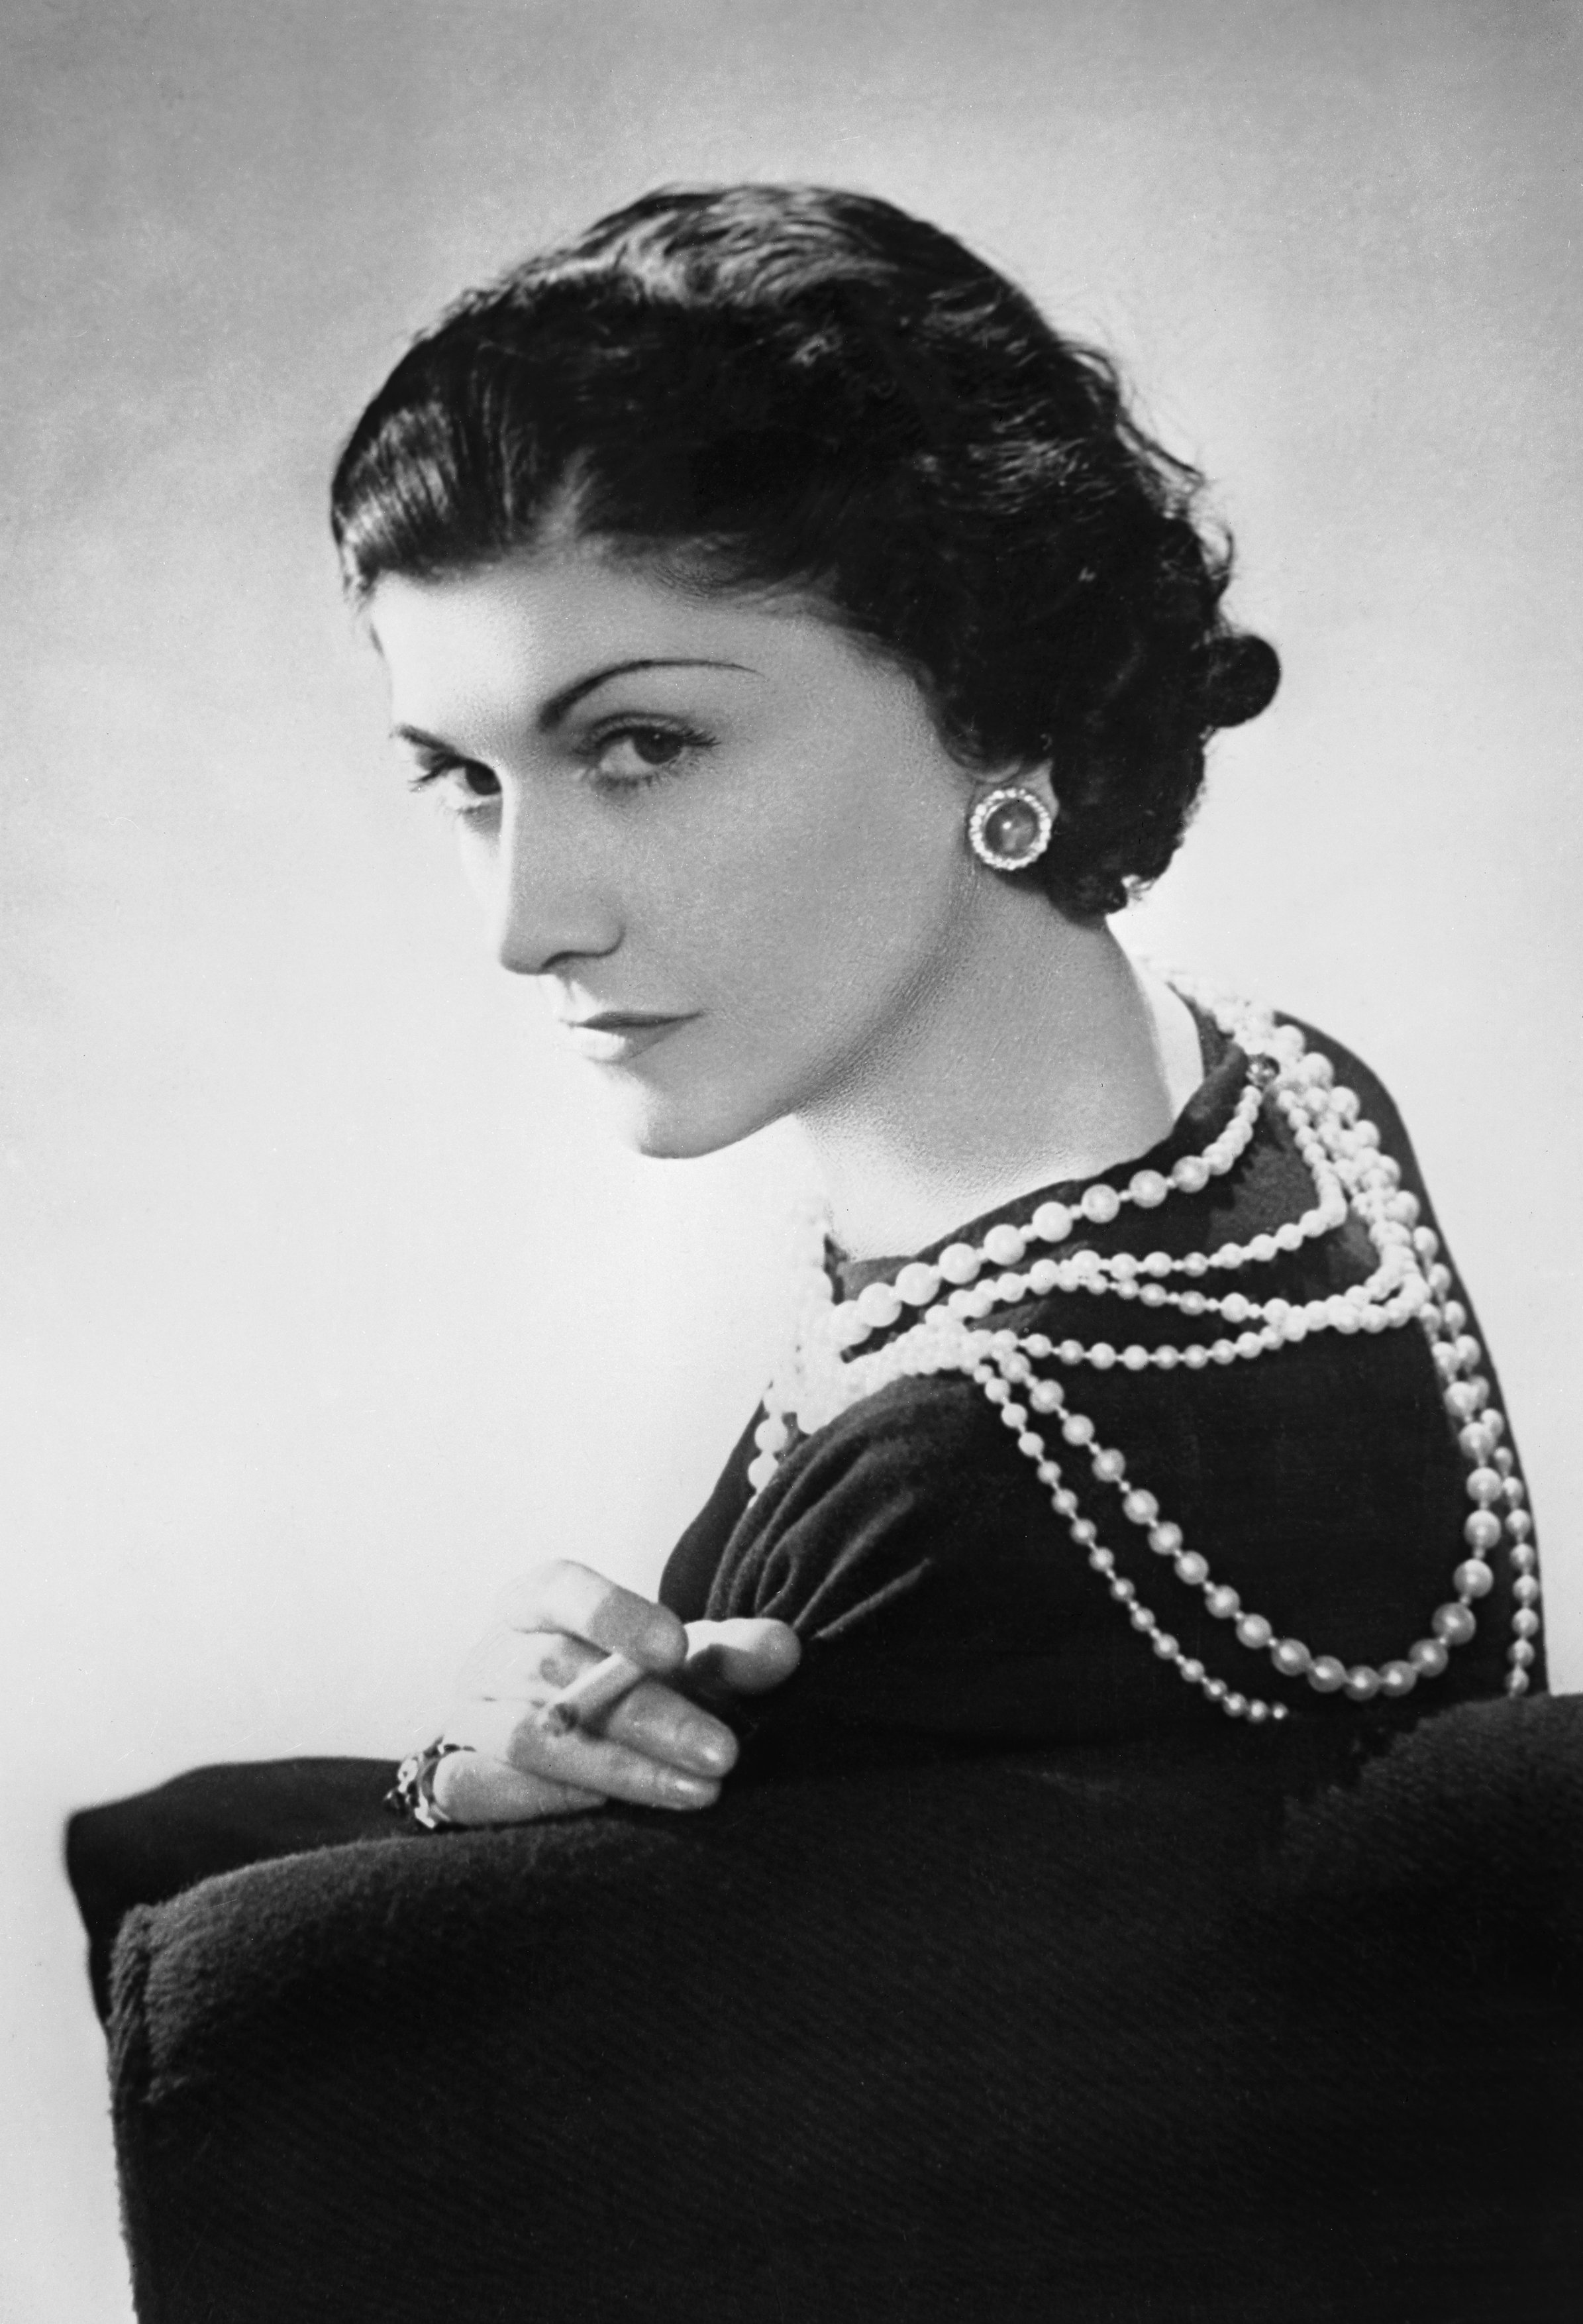 Chanel is releasing a new fragrance and handbag in 2017, named 'Gabrielle' after Coco Chanel in her early years.  The Gabrielle bag is a bucket-shaped backpack.